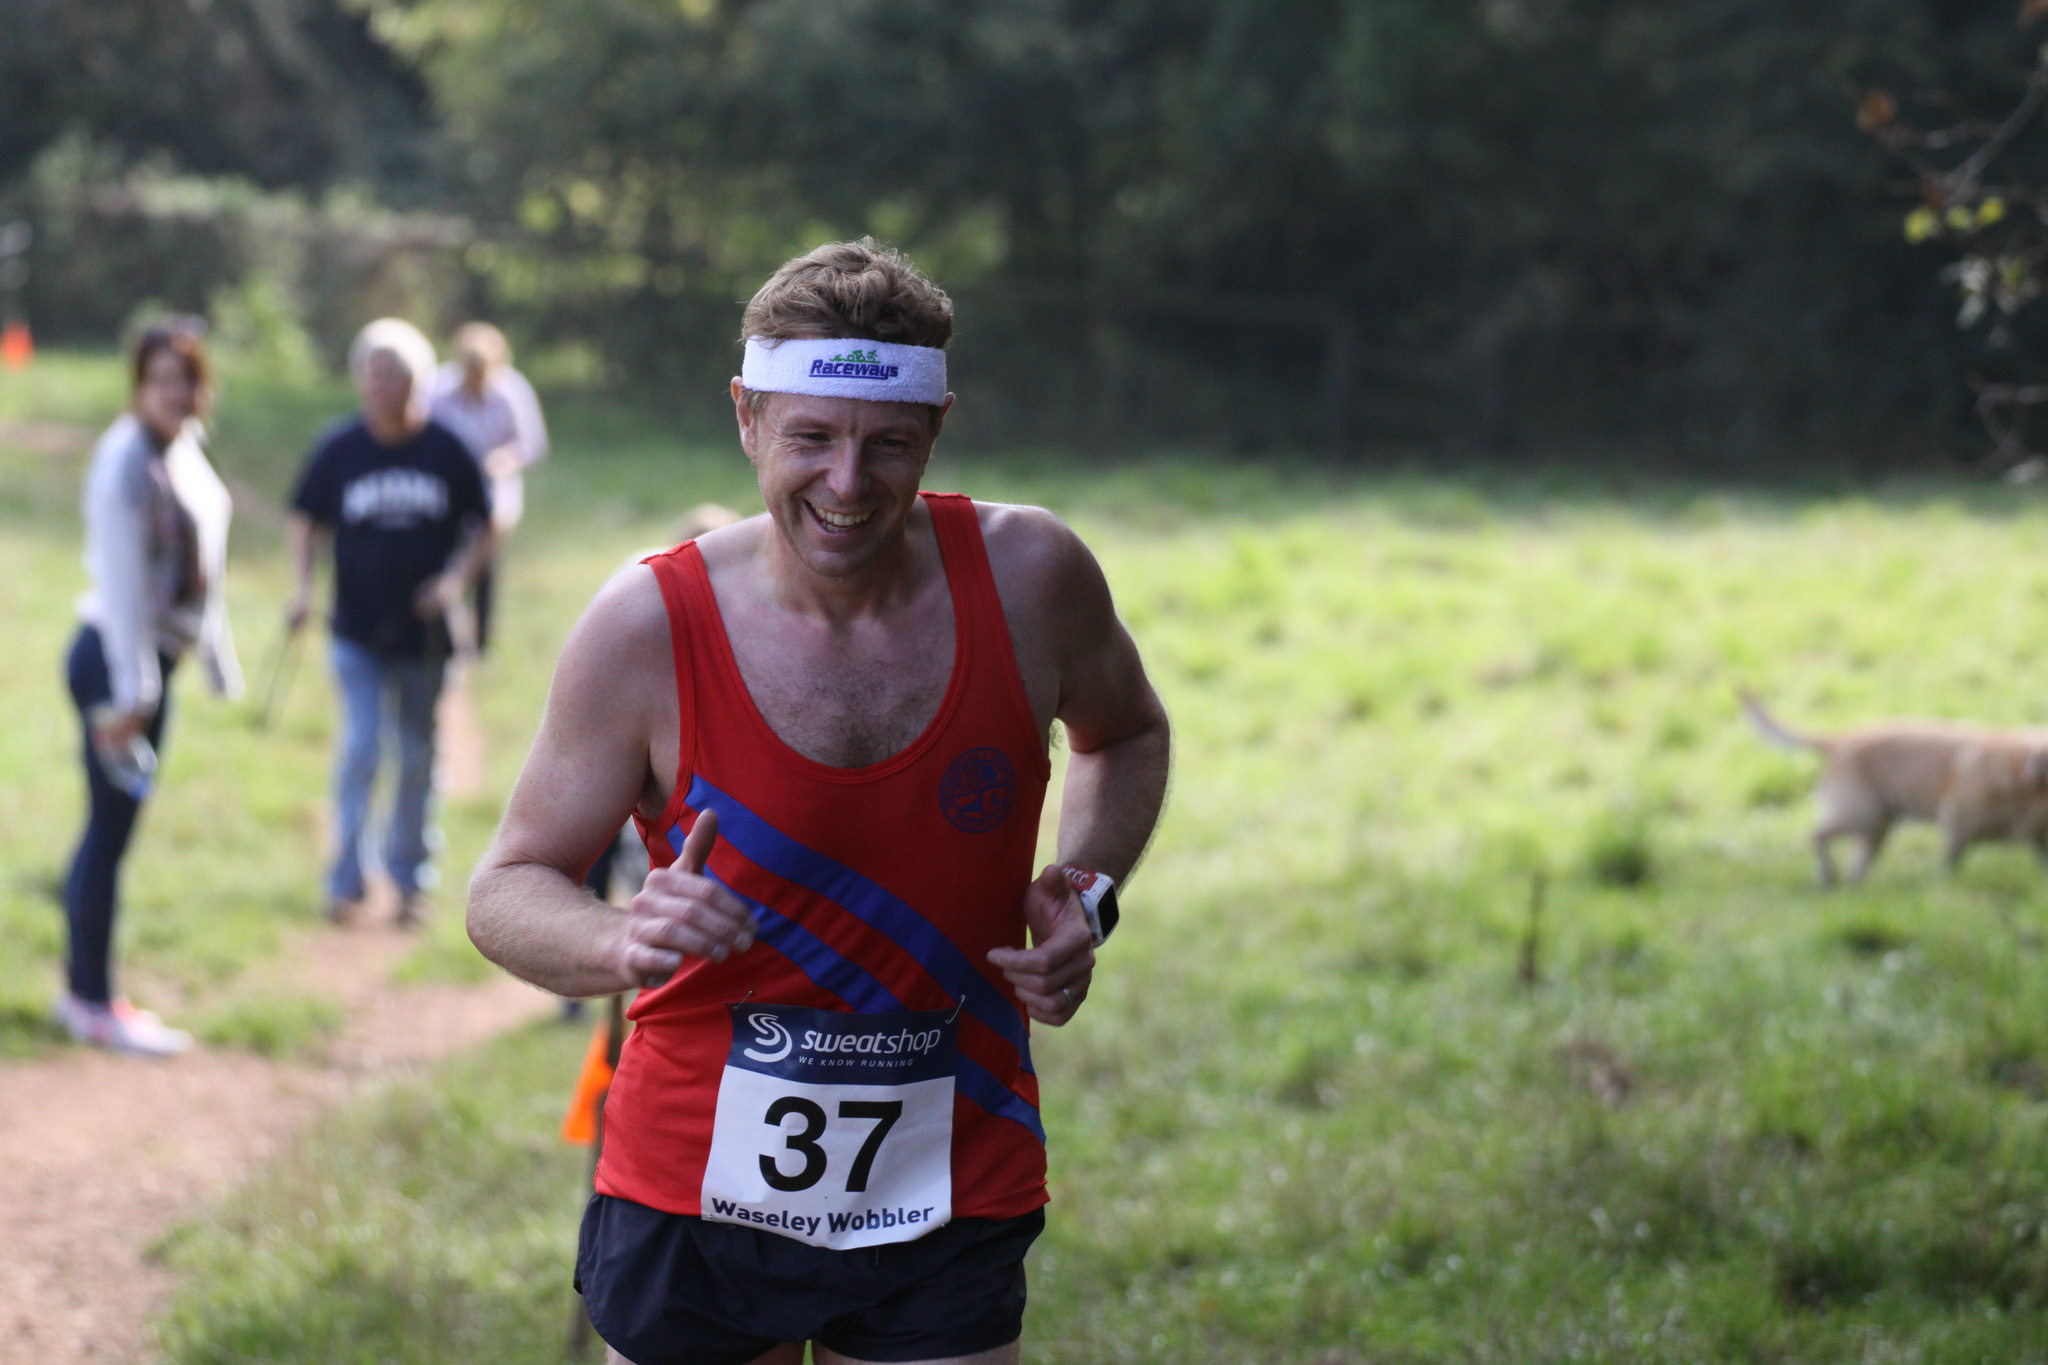 First male Bromsgrove and Redditch athlete Mark Tanner